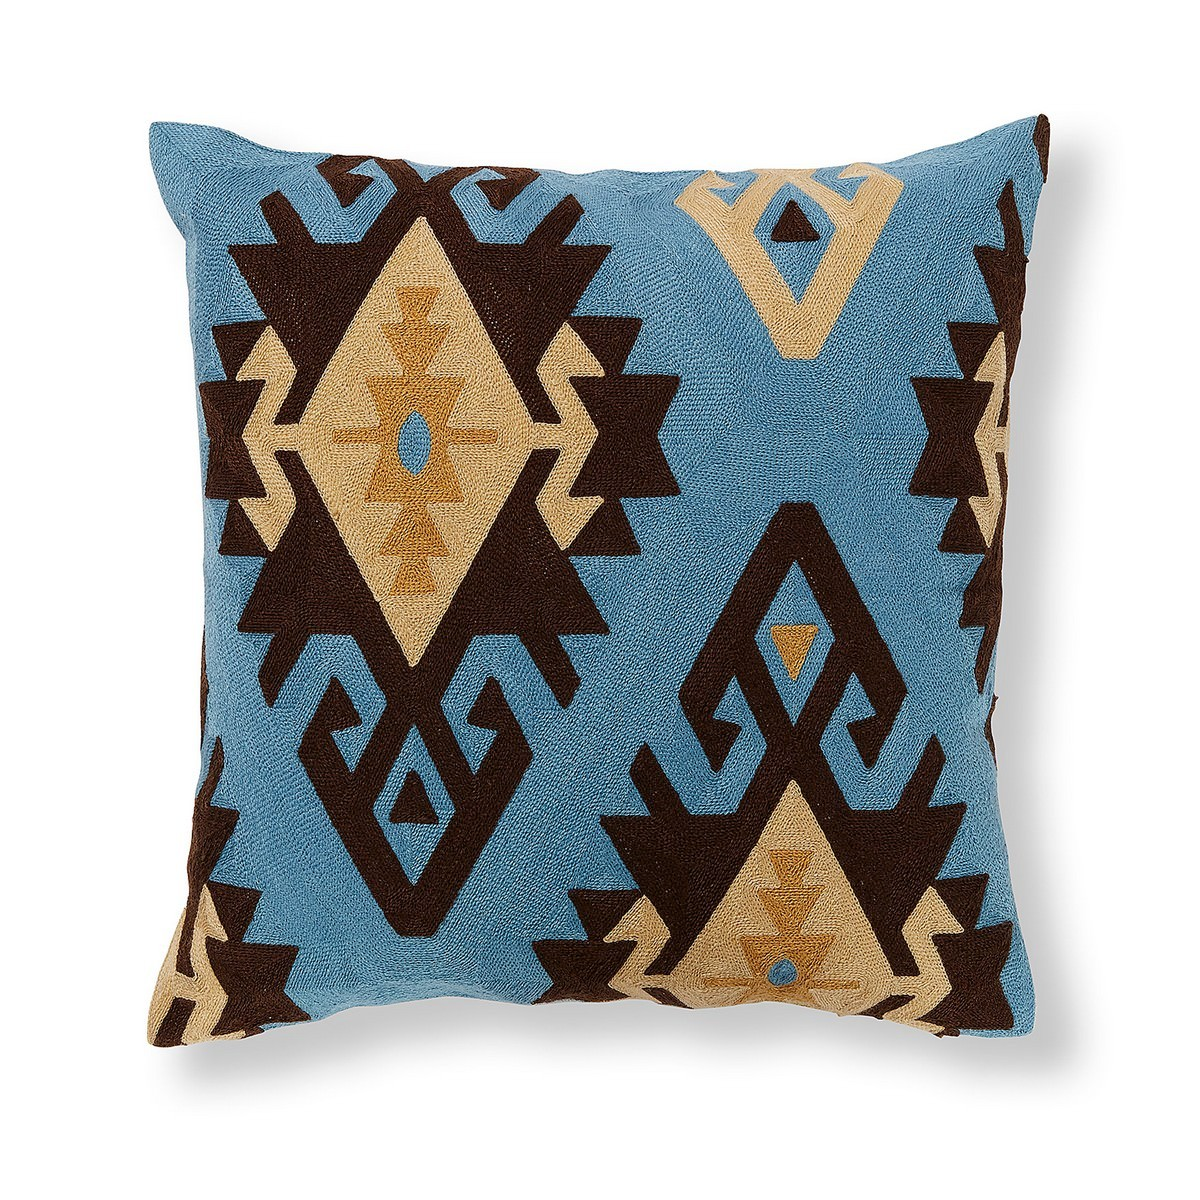 Aztec Embroidered Fabric Scatter Cushion Cover, Blue